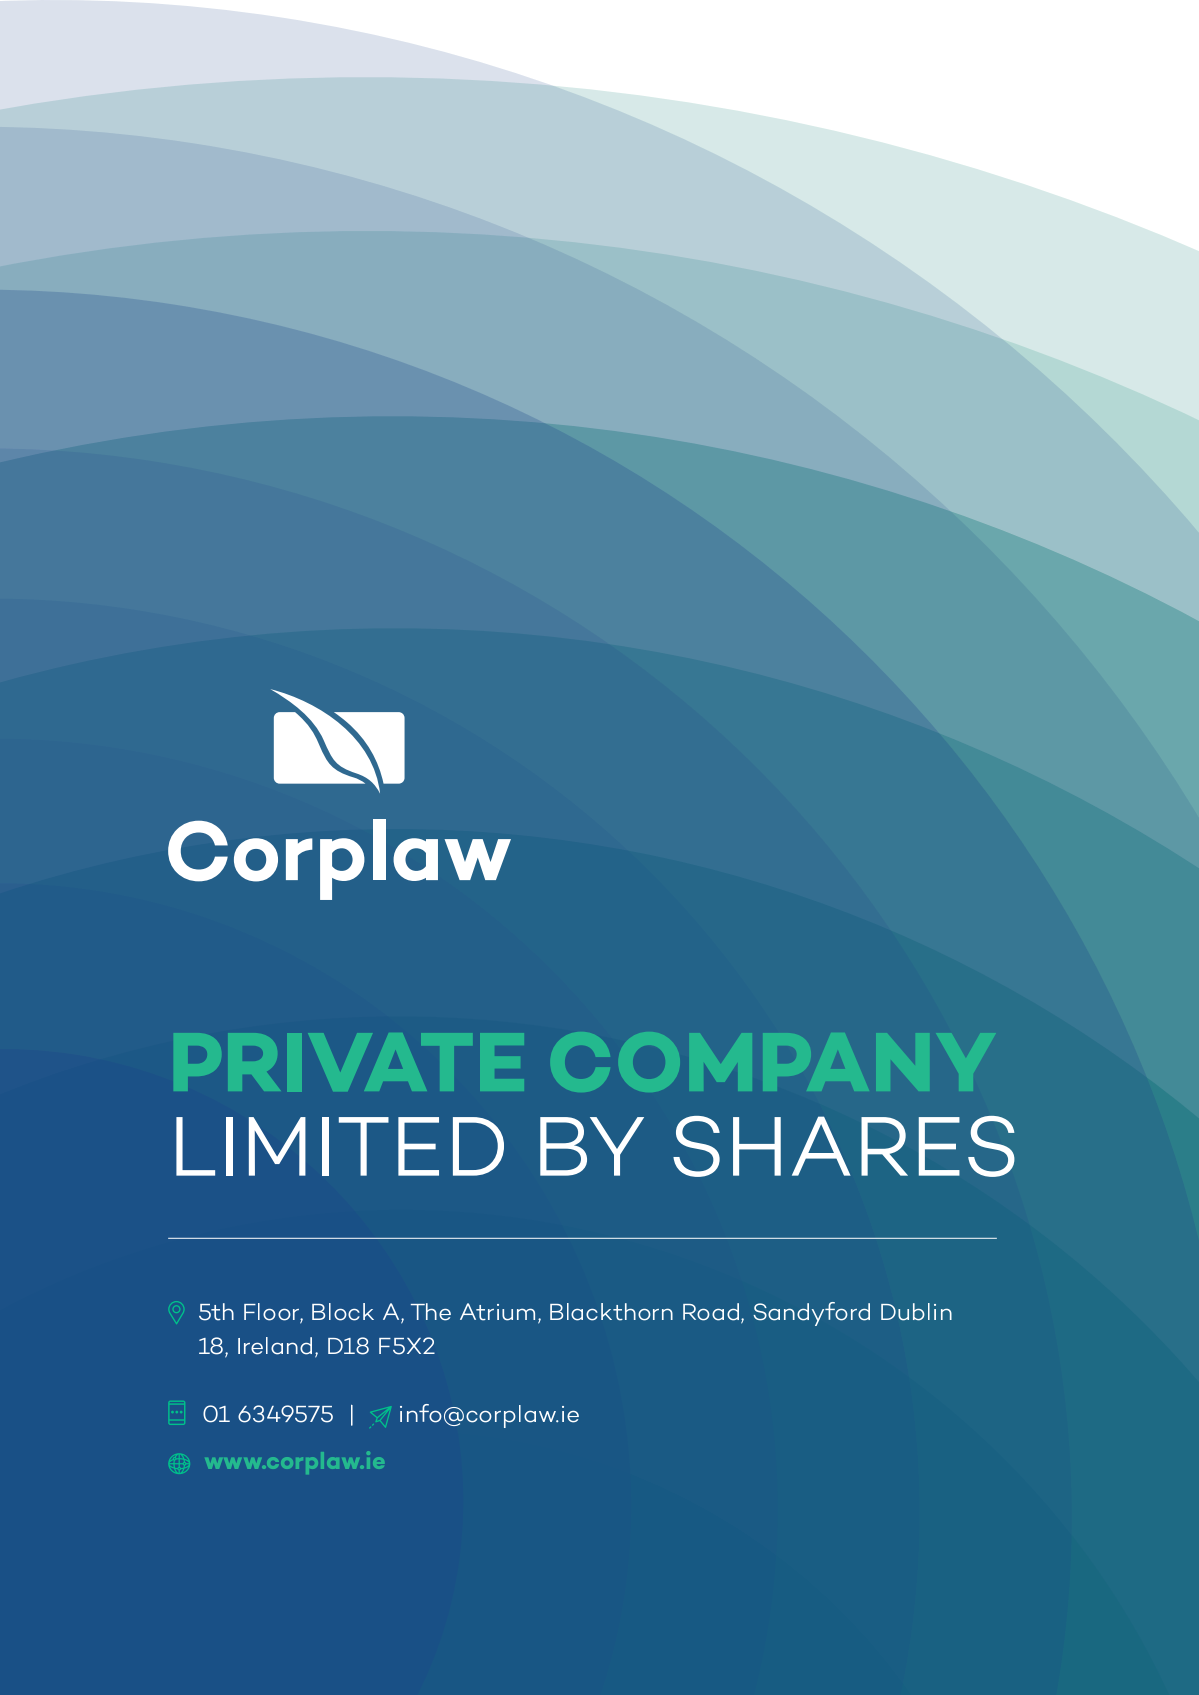 Corplaw Application Form [Interactive]